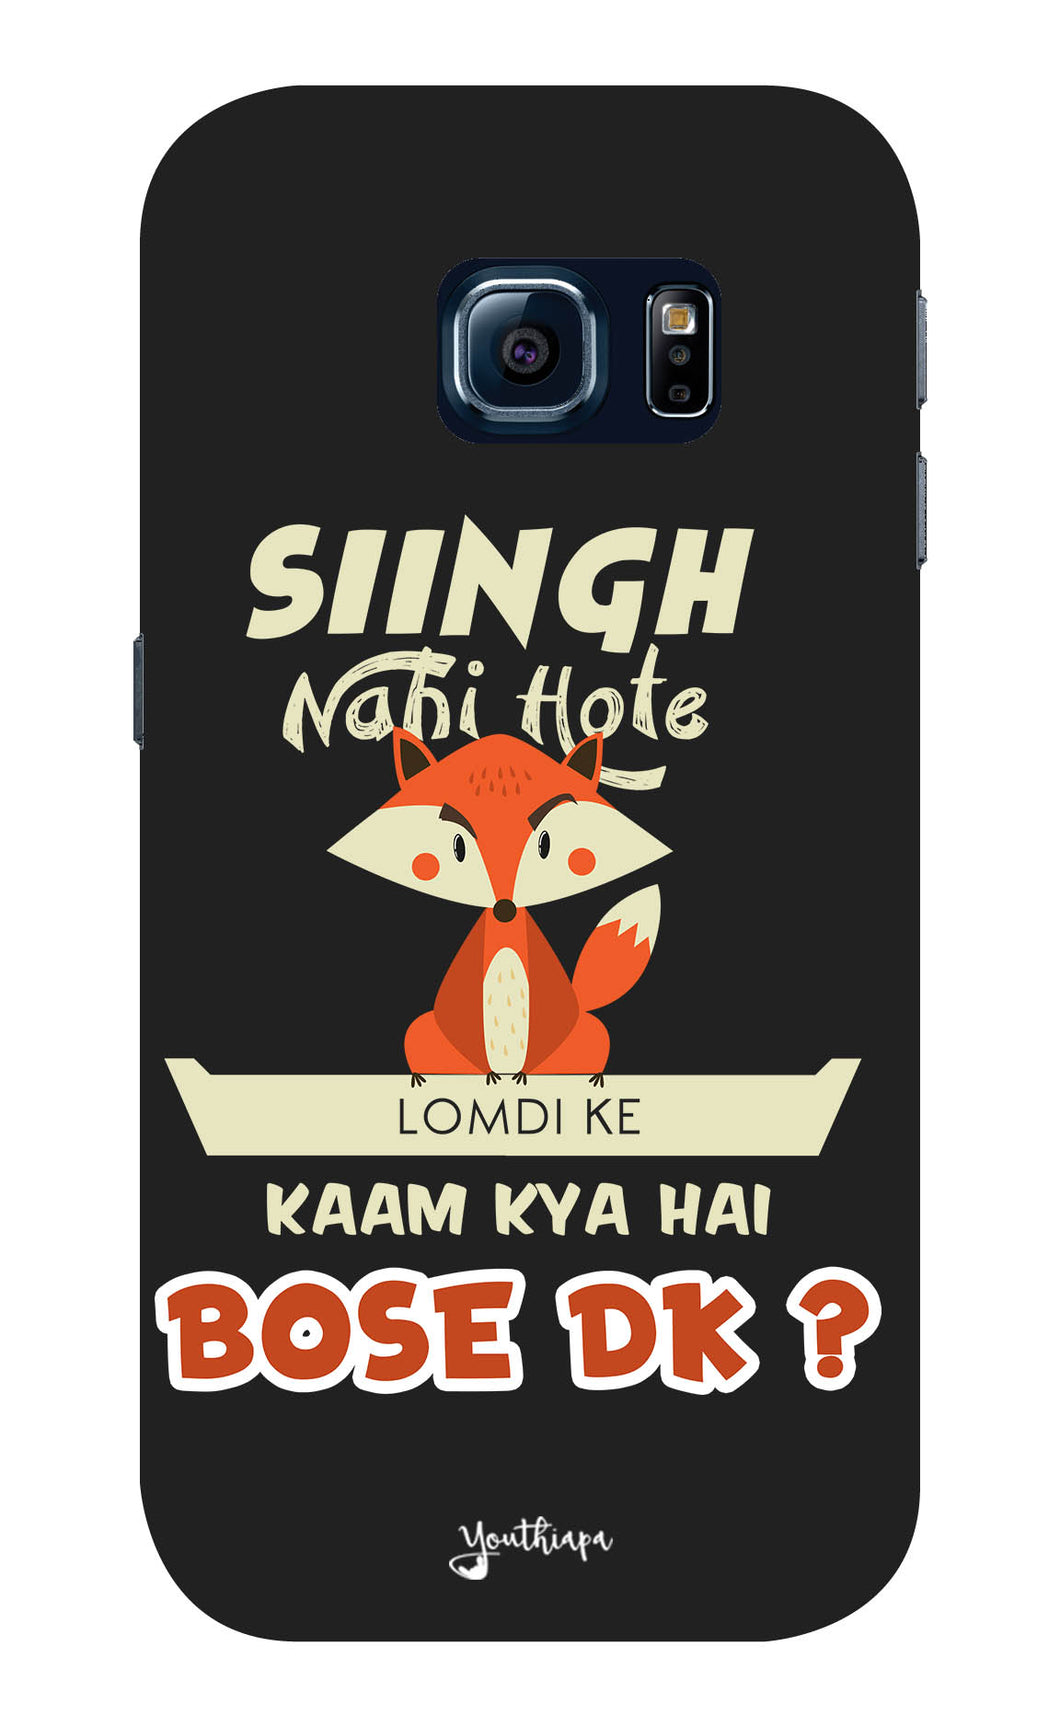 Singh Nahi Hote for Samsung Galaxy S6 Edge Plus